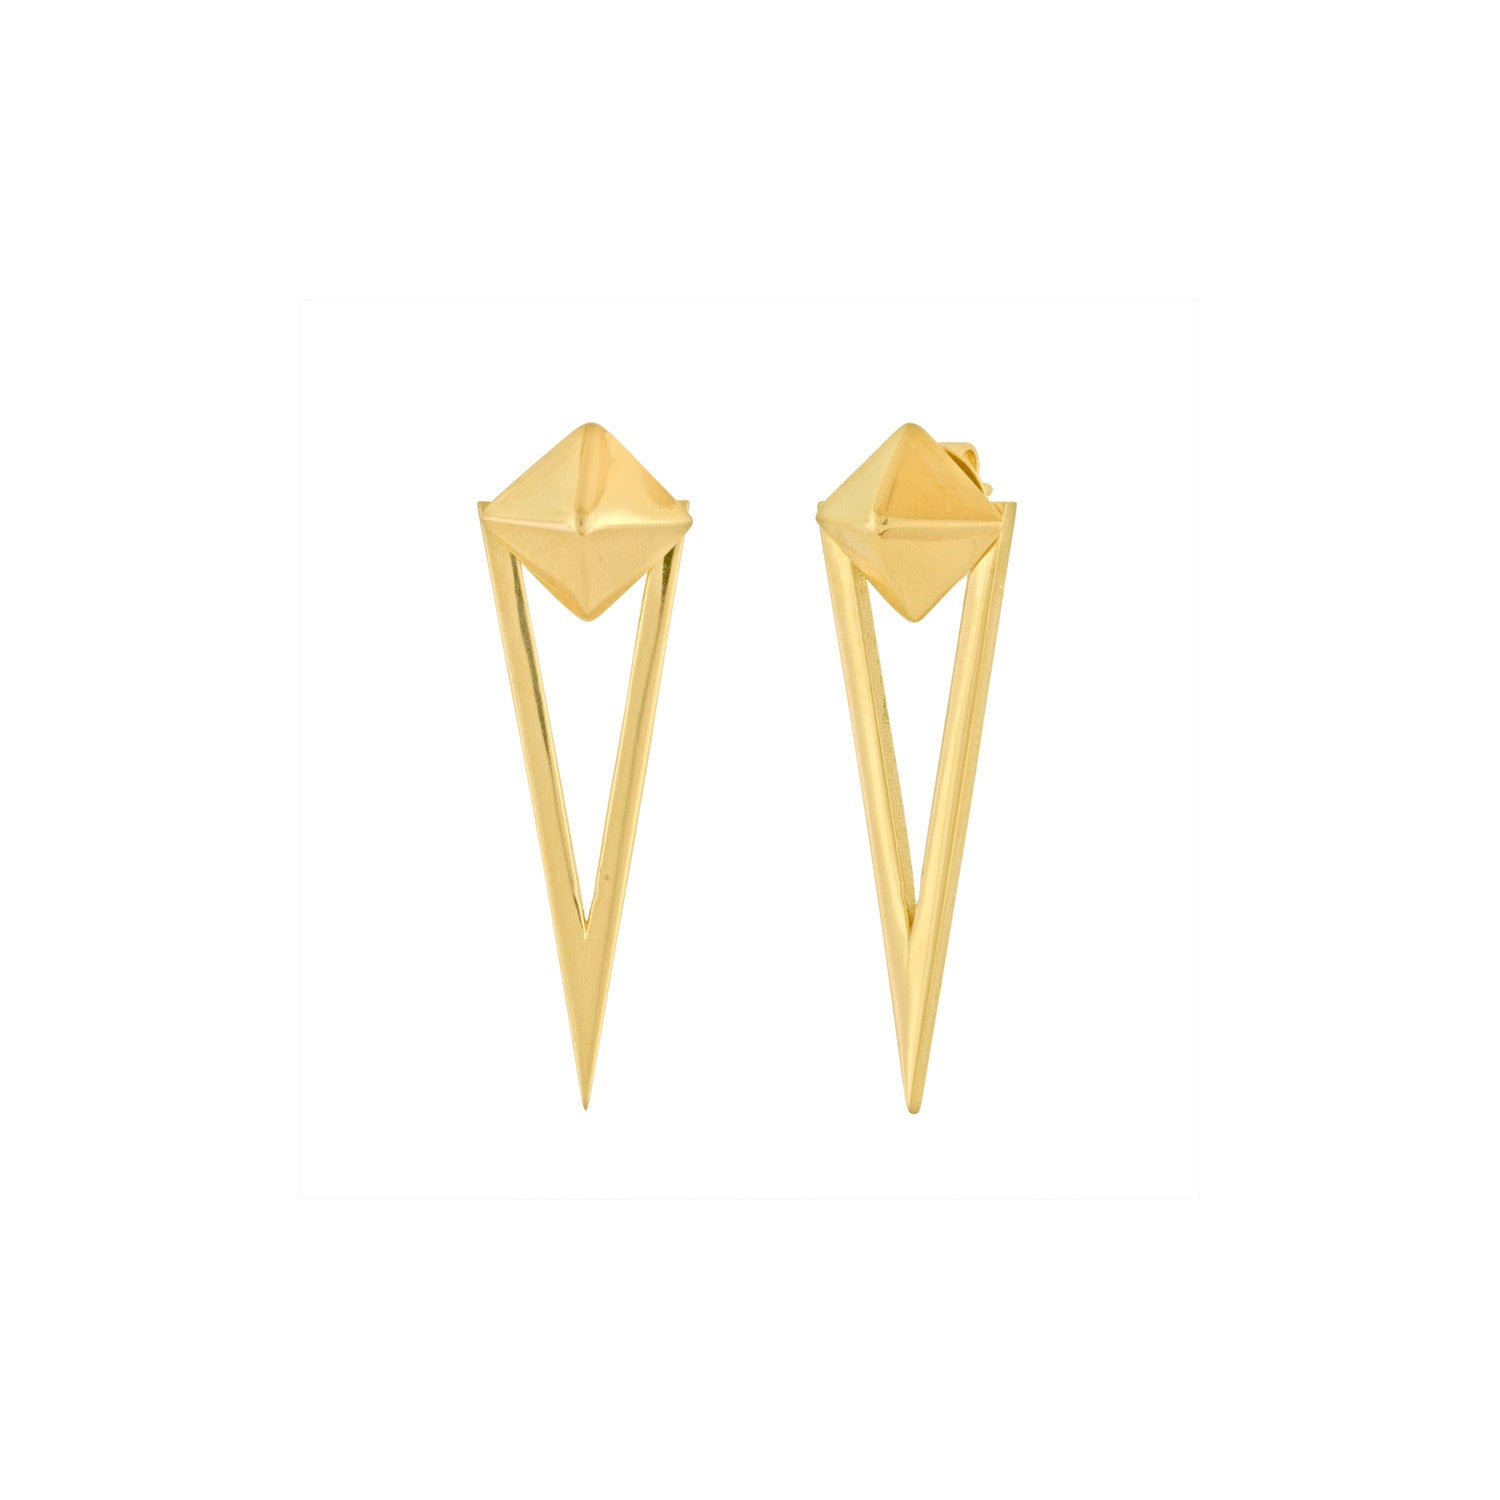 Gold Pyramid and Triangle Earrings